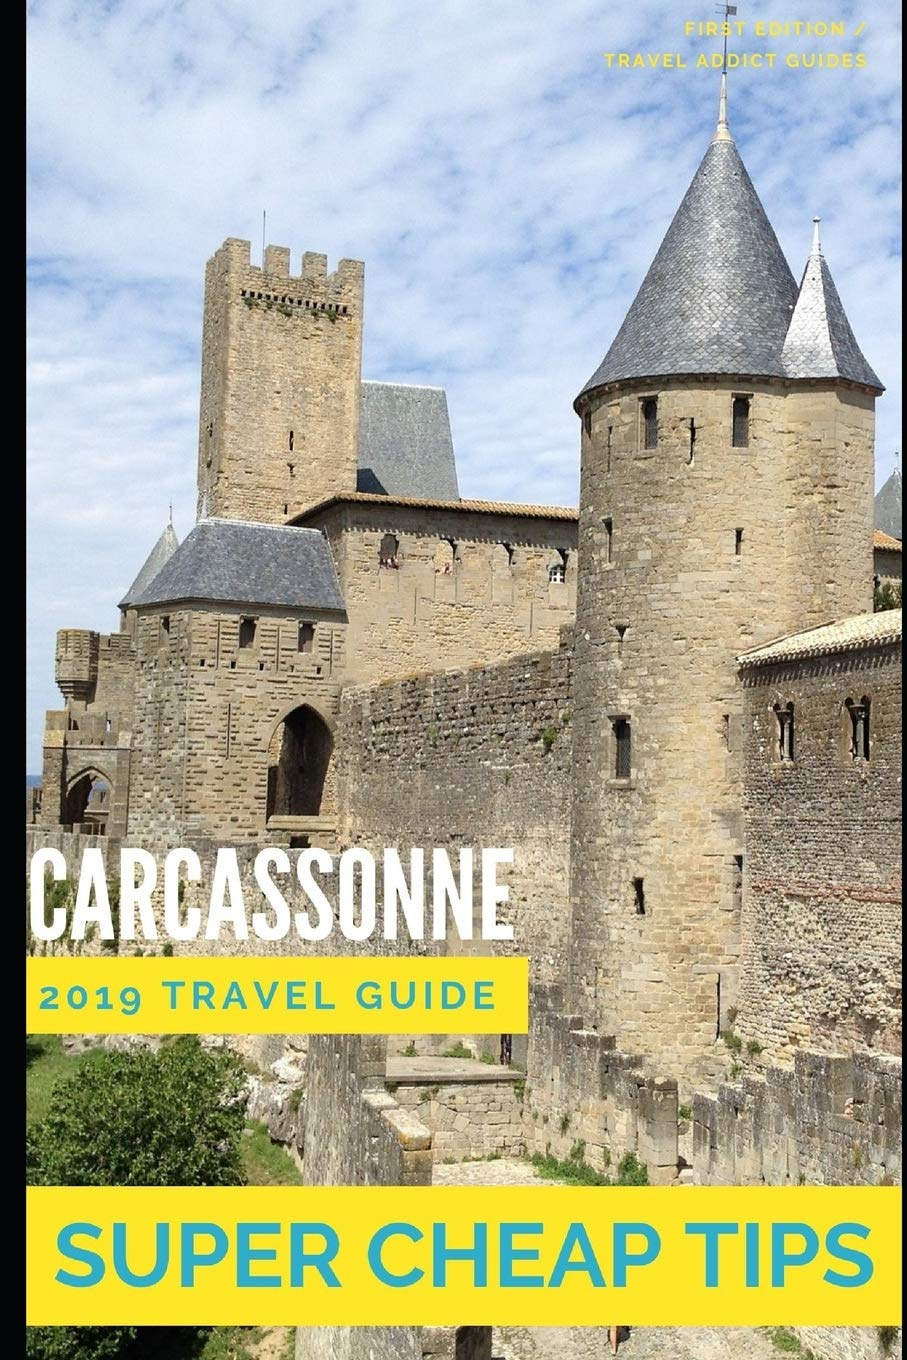 Super Cheap Carcassonne - Travel Guide 2019: Enjoy a $1,000 trip to Carcassonne for under $150: Amazon.es: Tang, Phil G, Martin, Léo: Libros en idiomas extranjeros